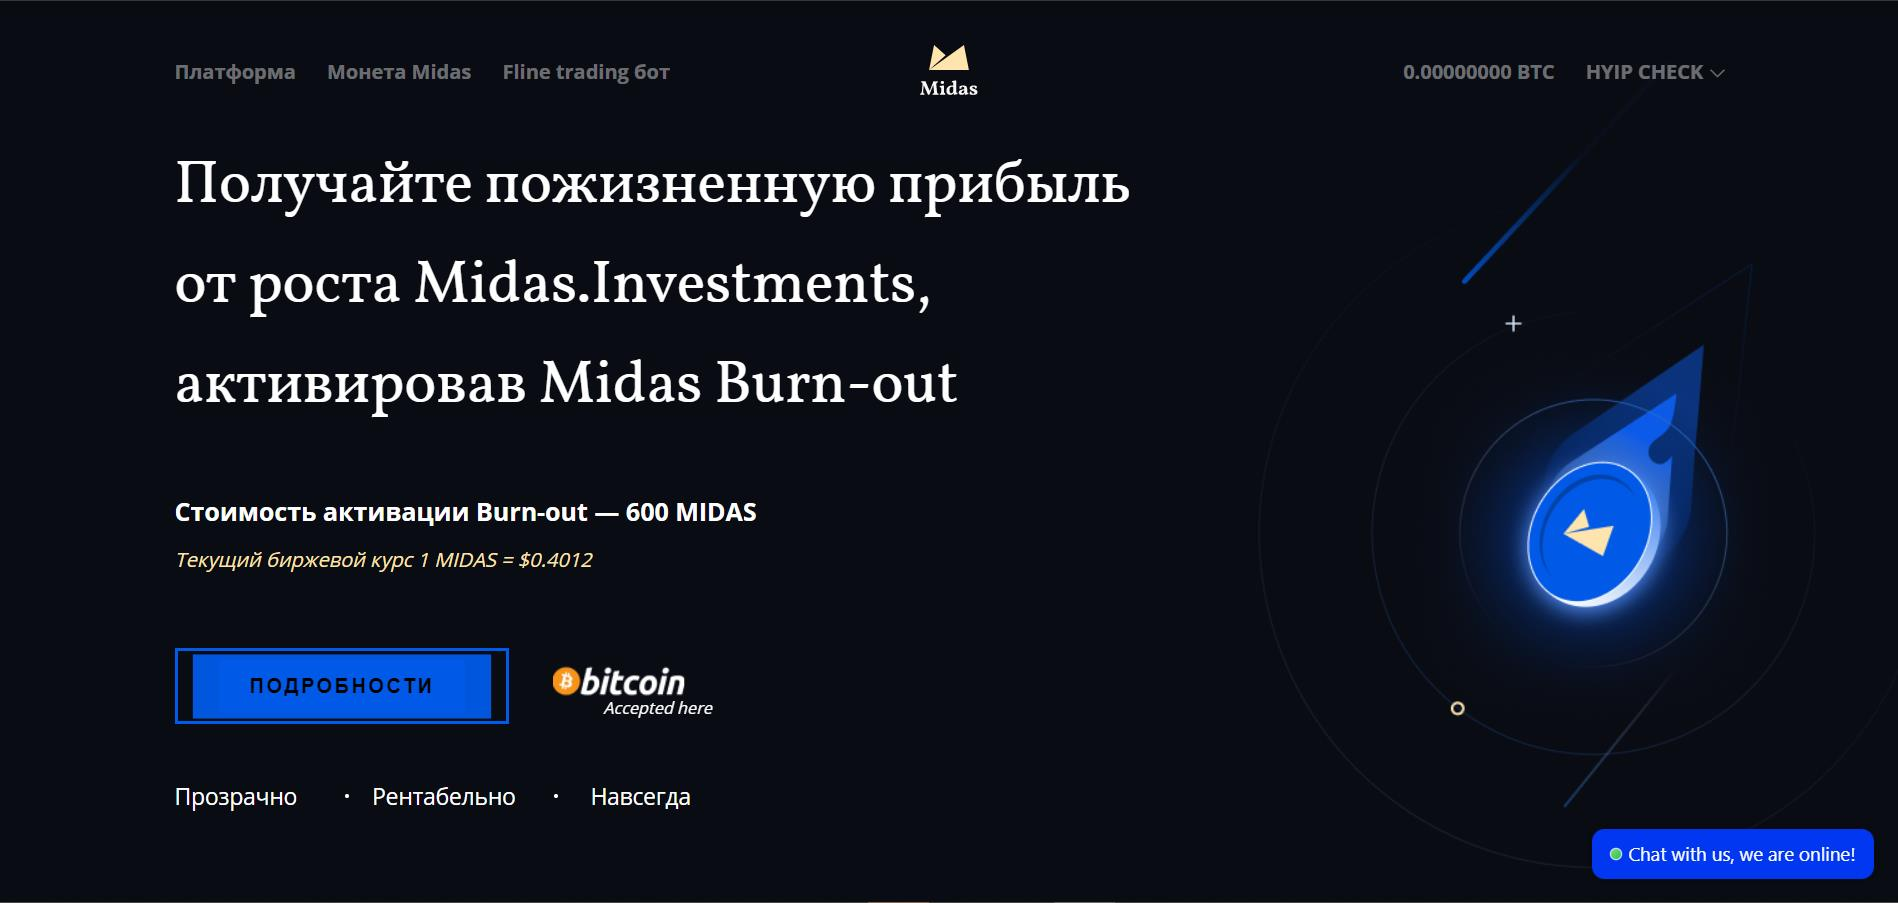 HYIP-CHECK.RU - Мониторинг HYIP Проектов. РЕФБЕК 50% - Страница 4 ScreenShot_20191127171337